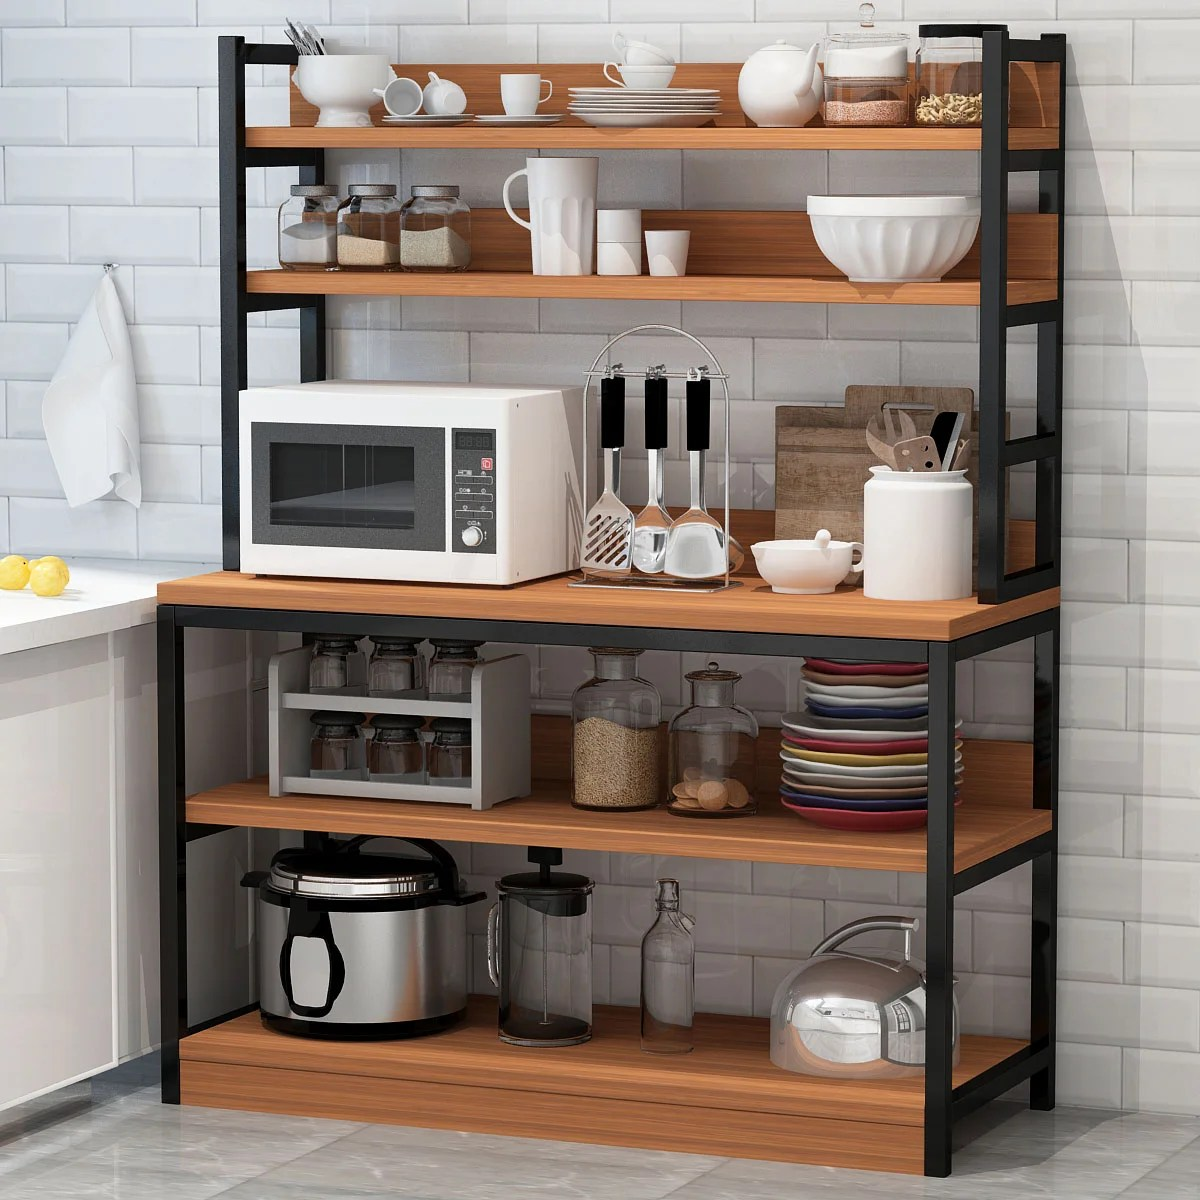 5 tier kitchen bakers rack with hutch industrial microwave oven stand free standing kitchen utility cart storage shelf organizer rustic brown